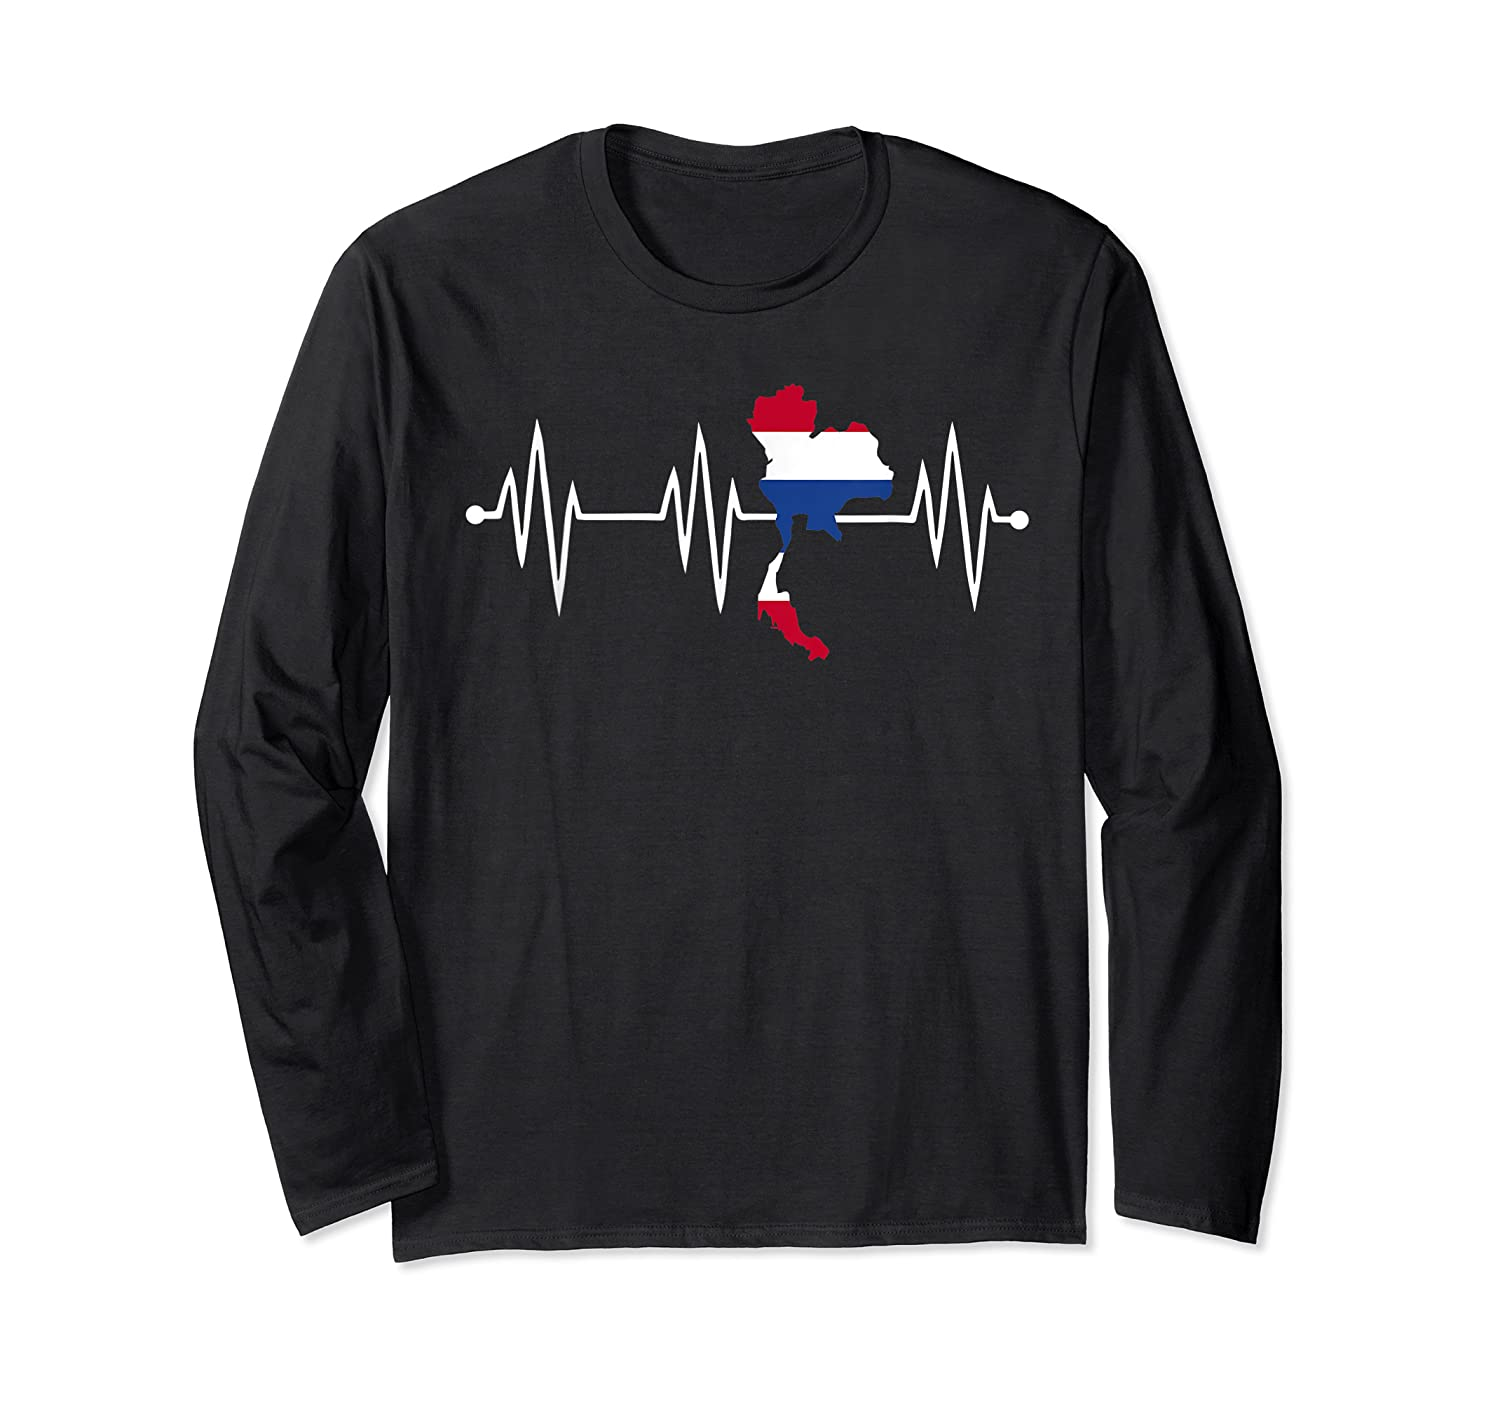 Heartbeat Thailand Shirt For And  Long Sleeve T-shirt